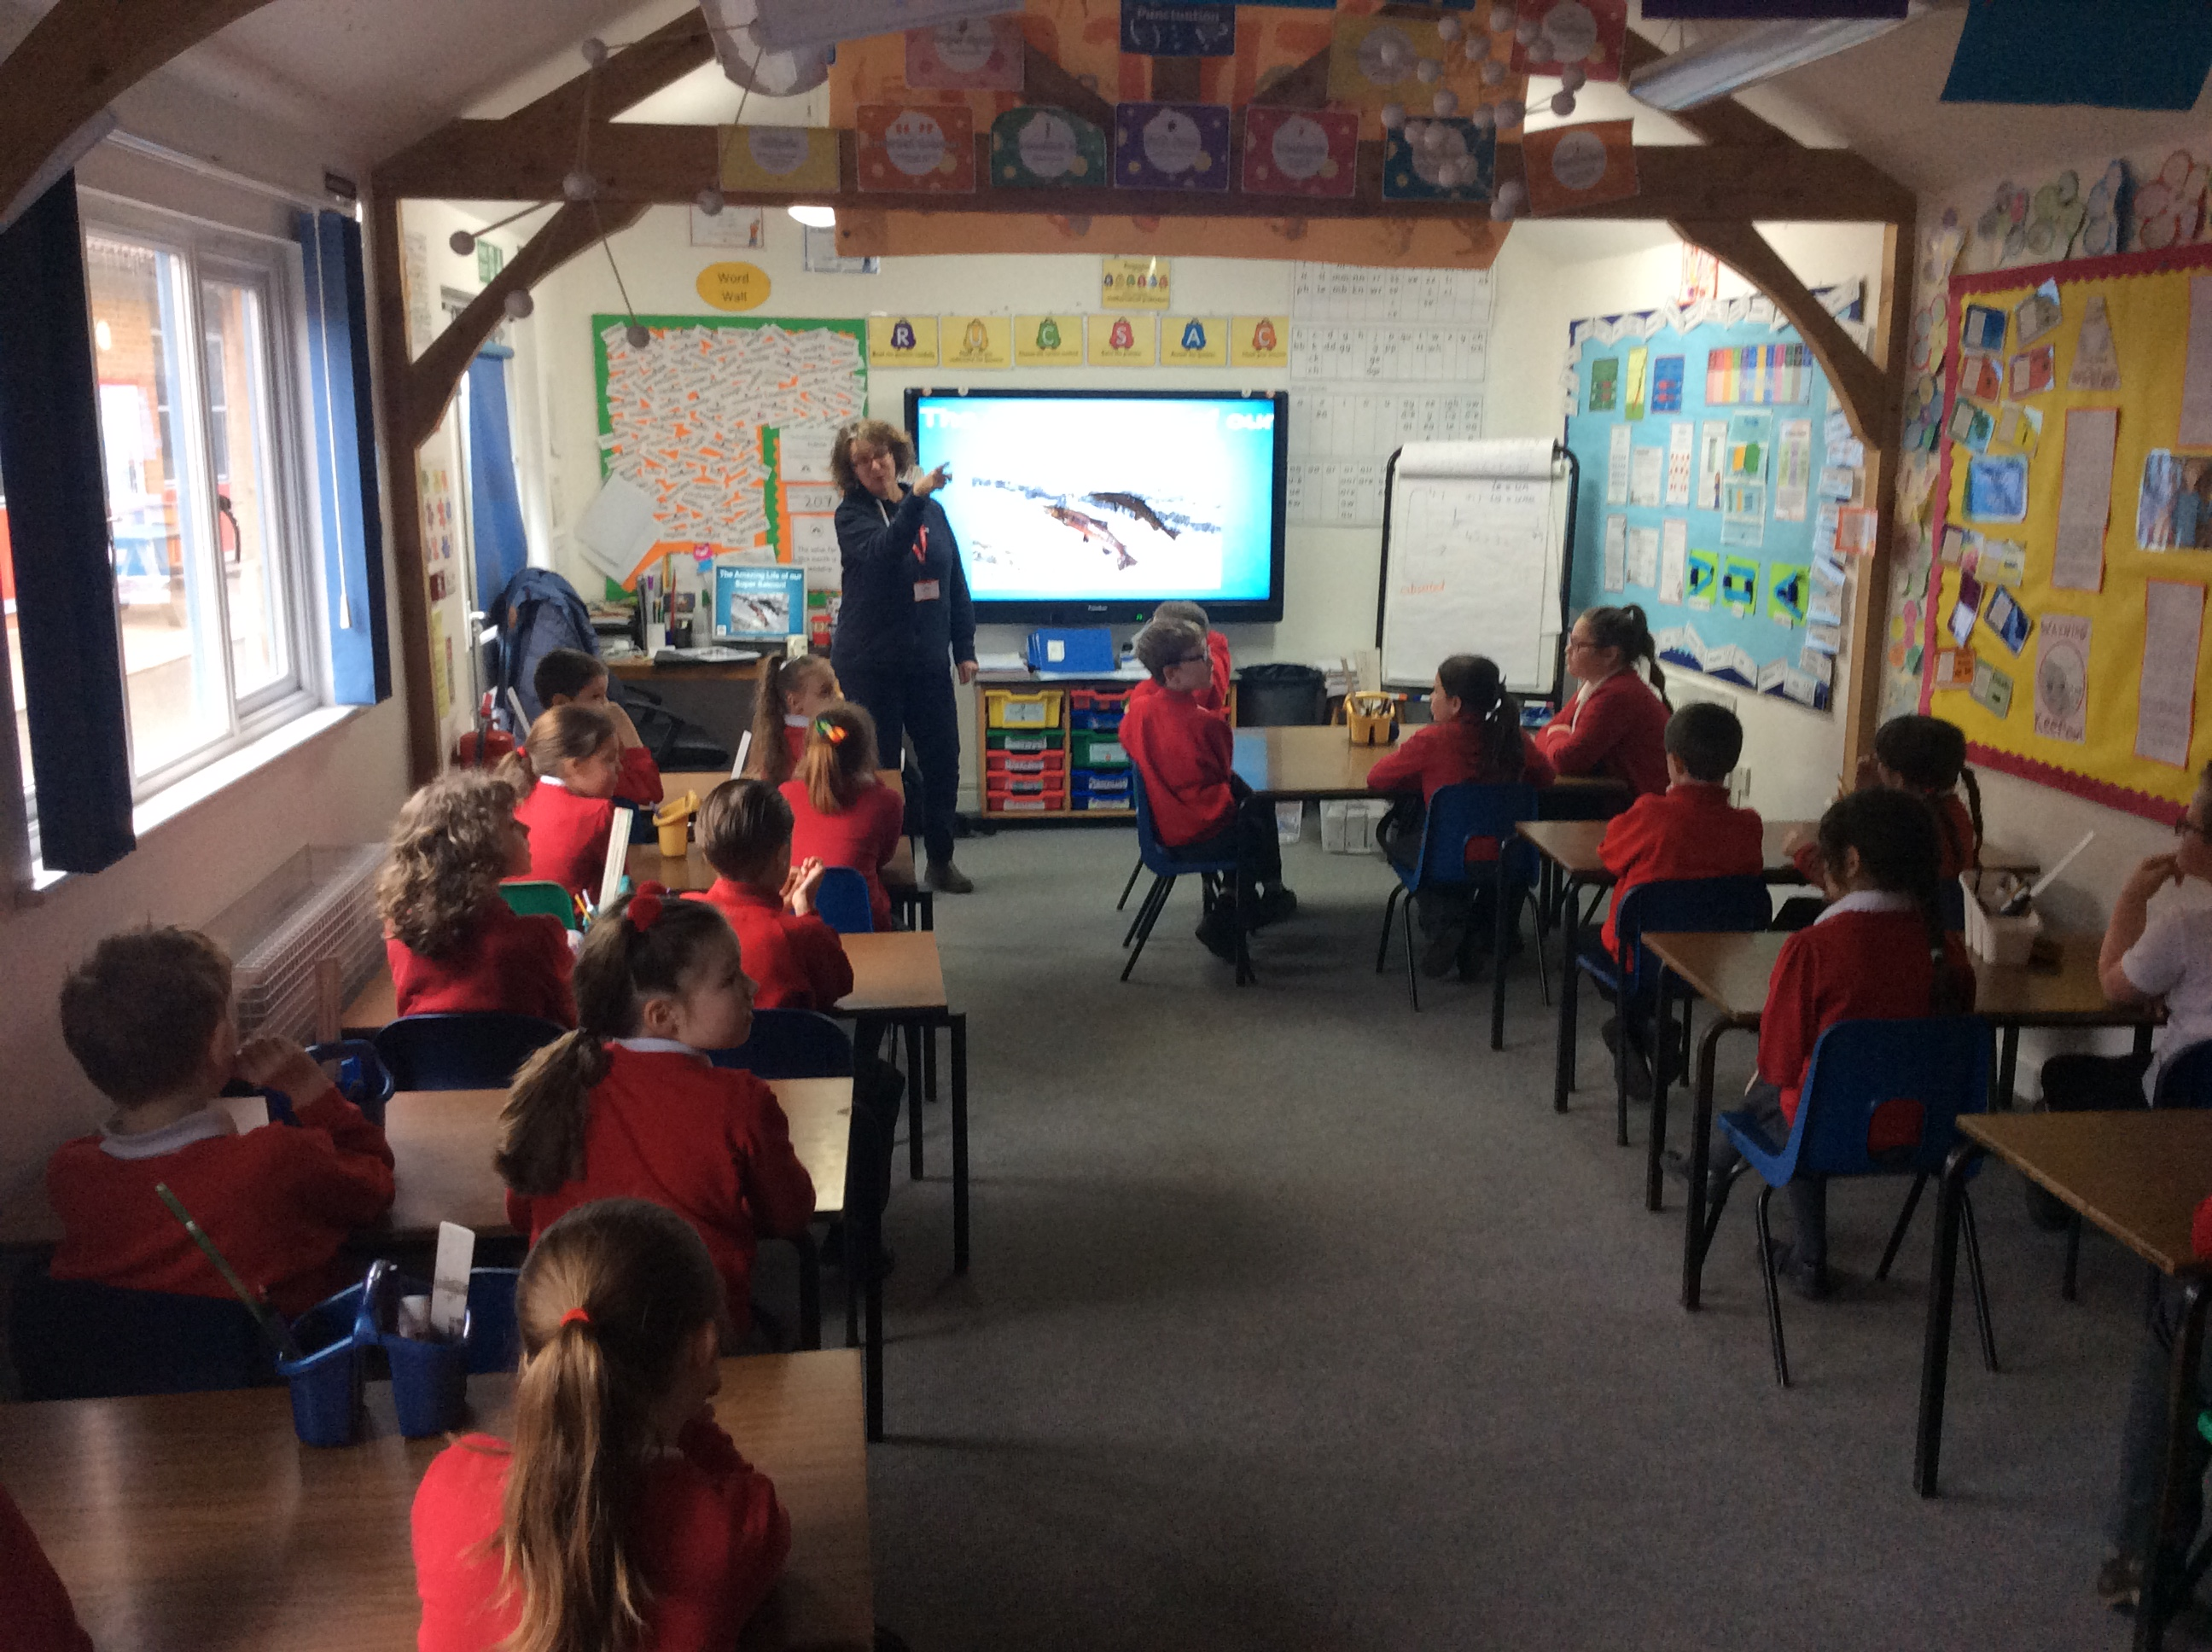 Colette Mooney, WUFs Head of Education, teaching primary school children about salmon and their struggle to survive in our rivers and streams.